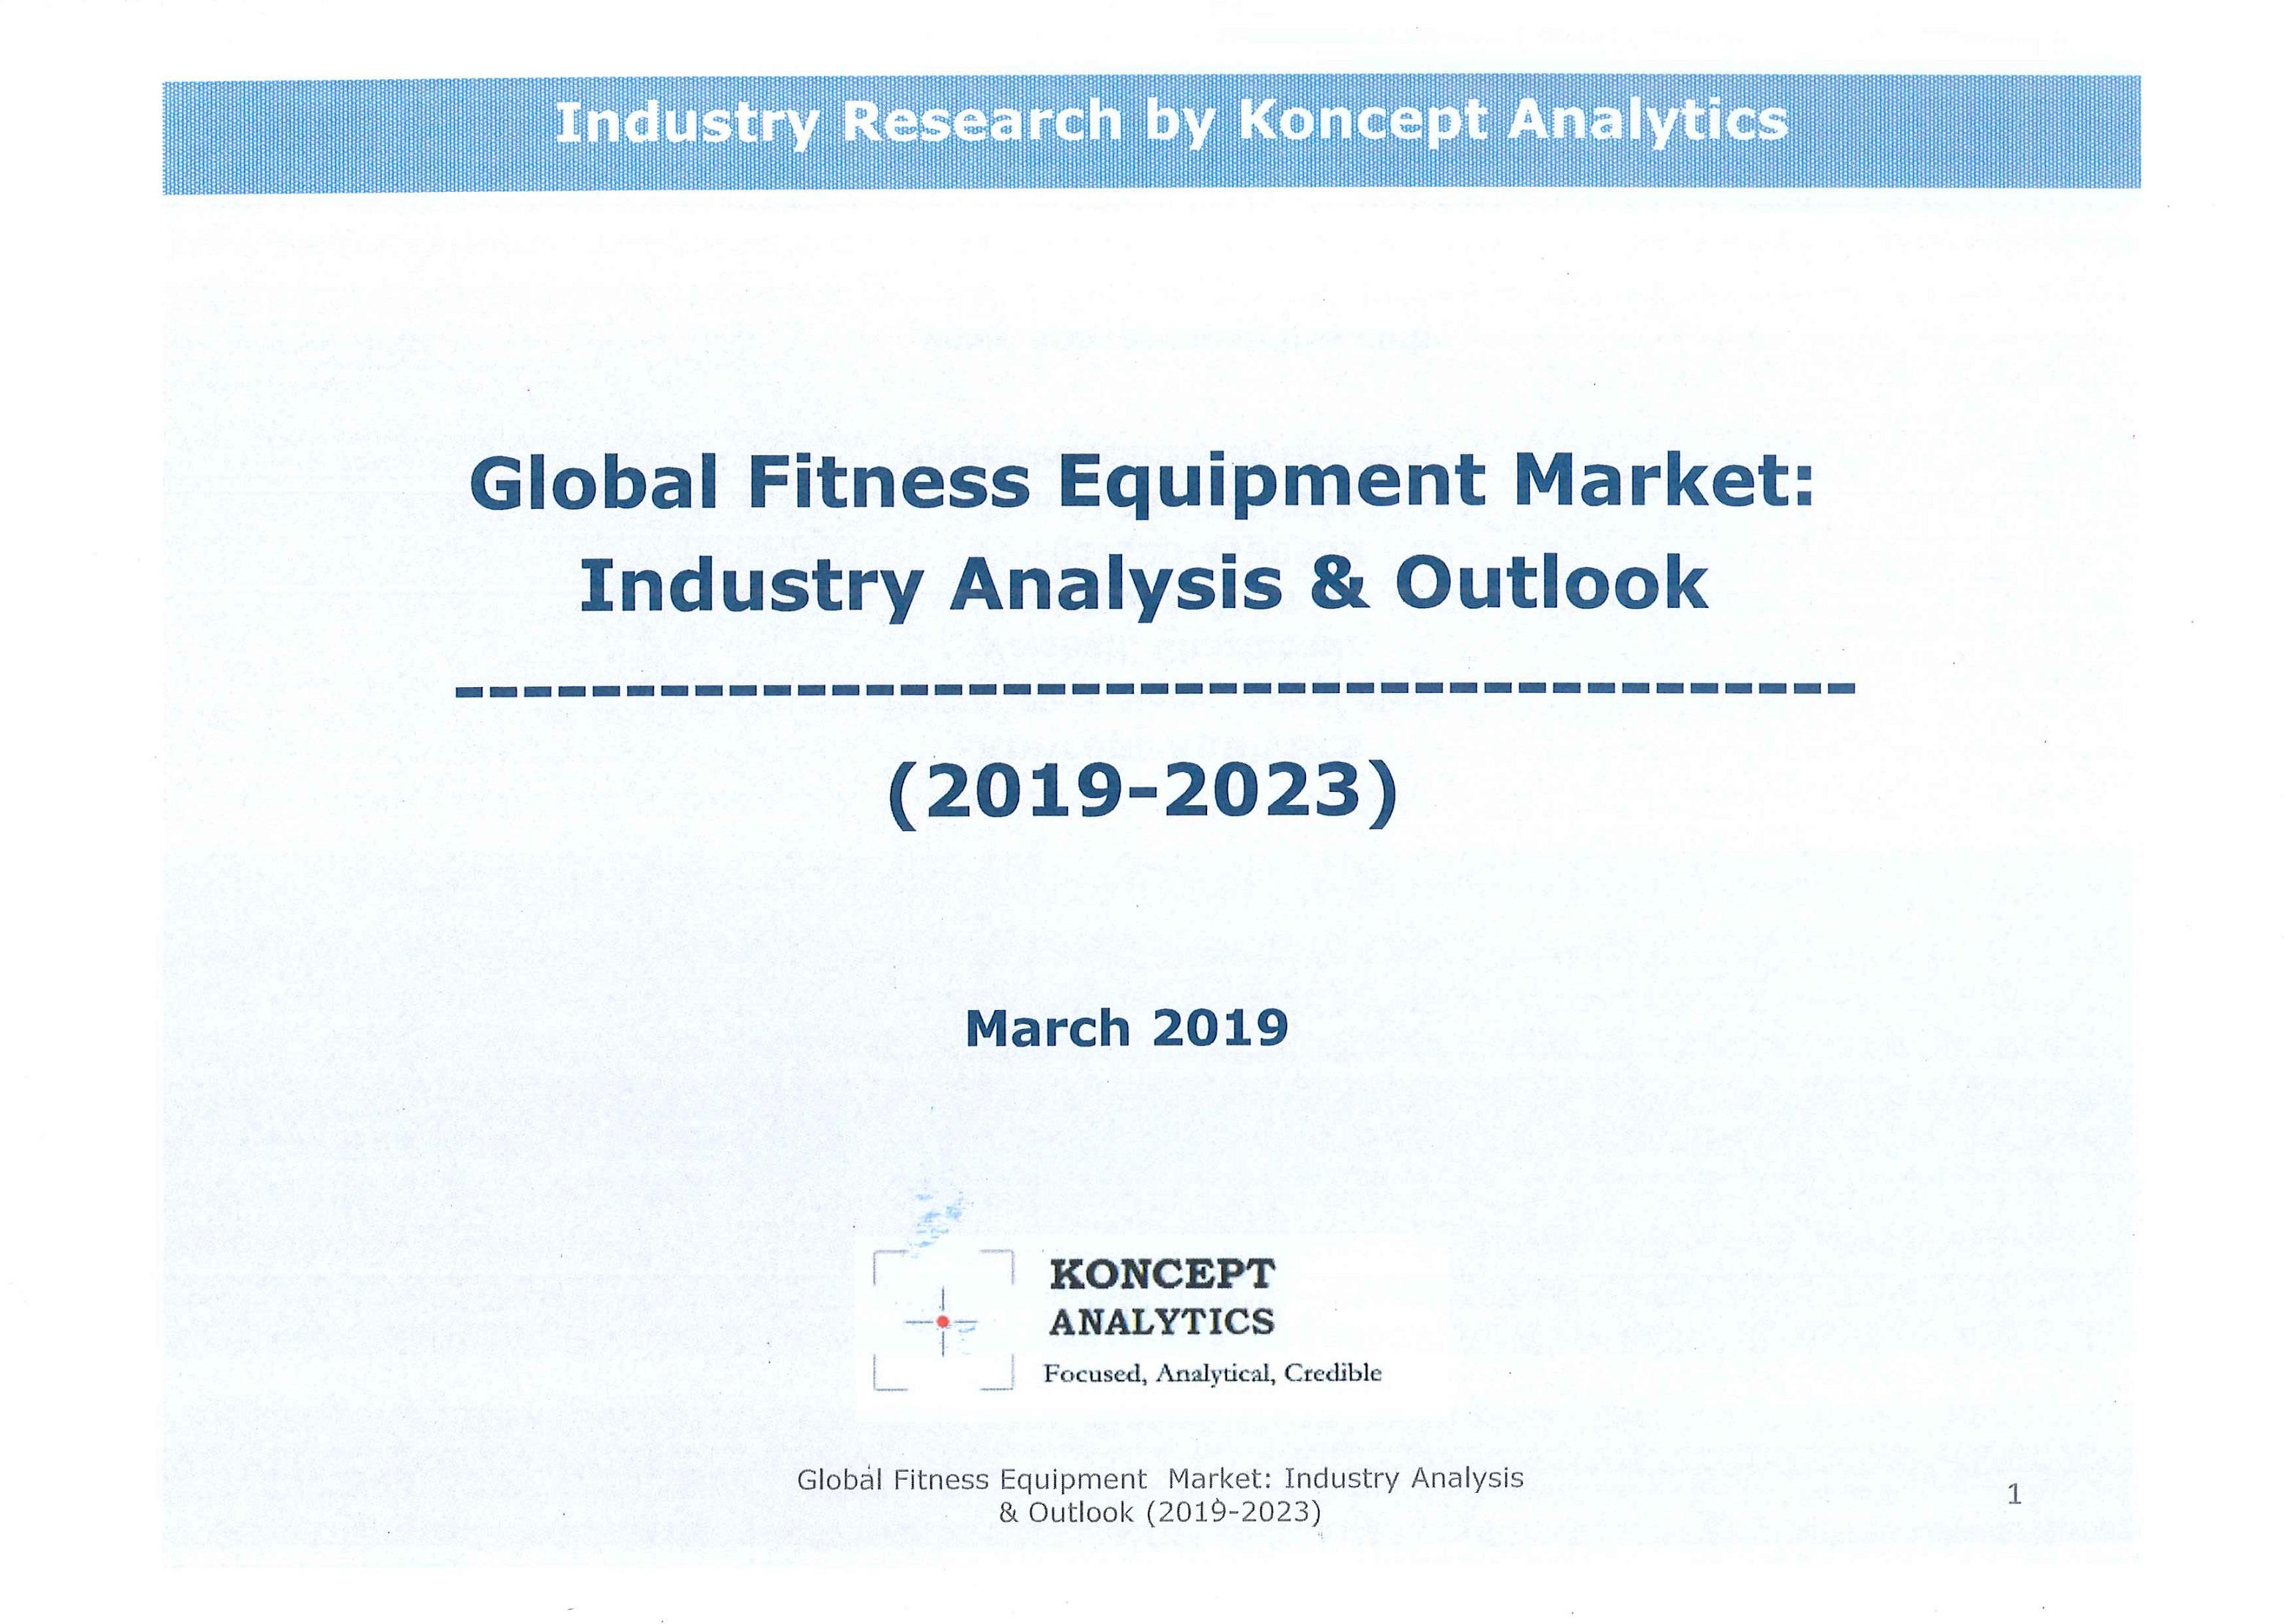 Global fitness equipment market [e-book].2019-2023:industry analysis & outlook